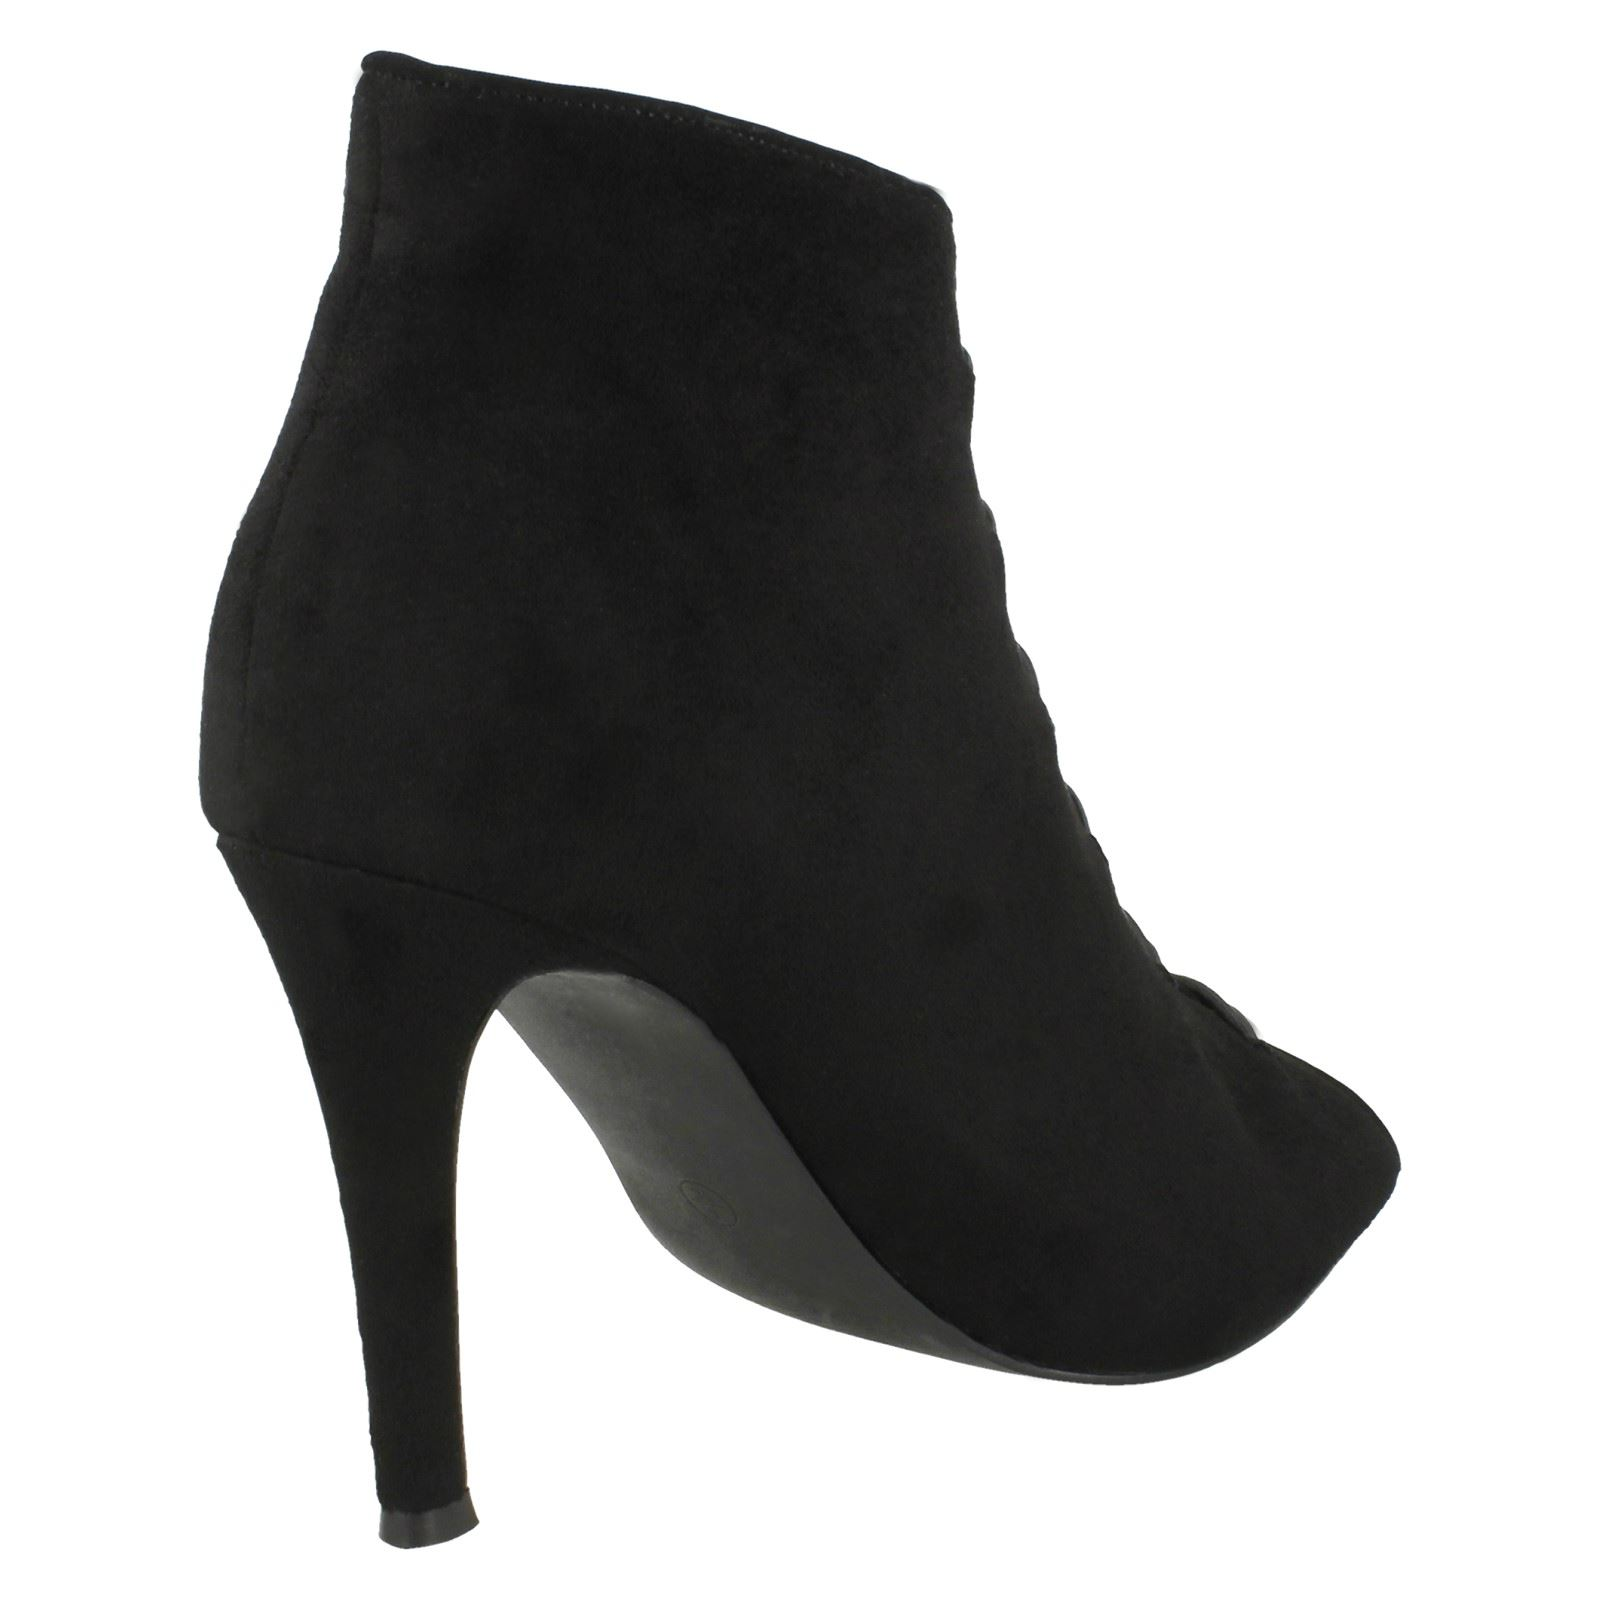 Ladies Spot On High Heel Peeptoe Button Up Ankle Boots F10738